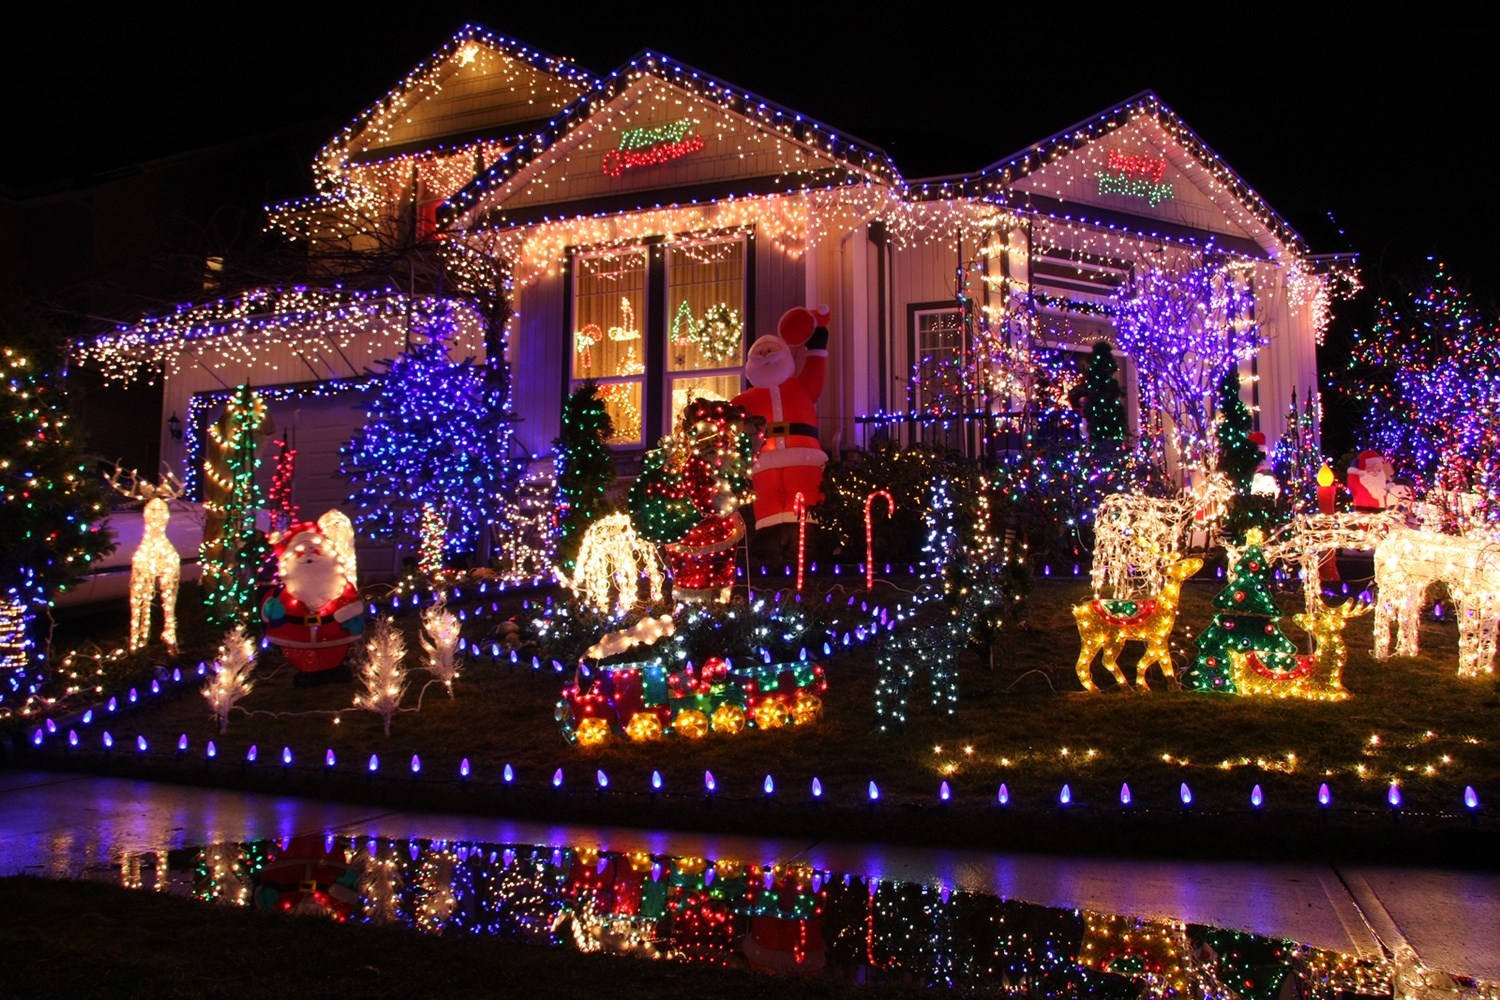 bigstock-Beautiful-Christmas-lights-dis-15284504